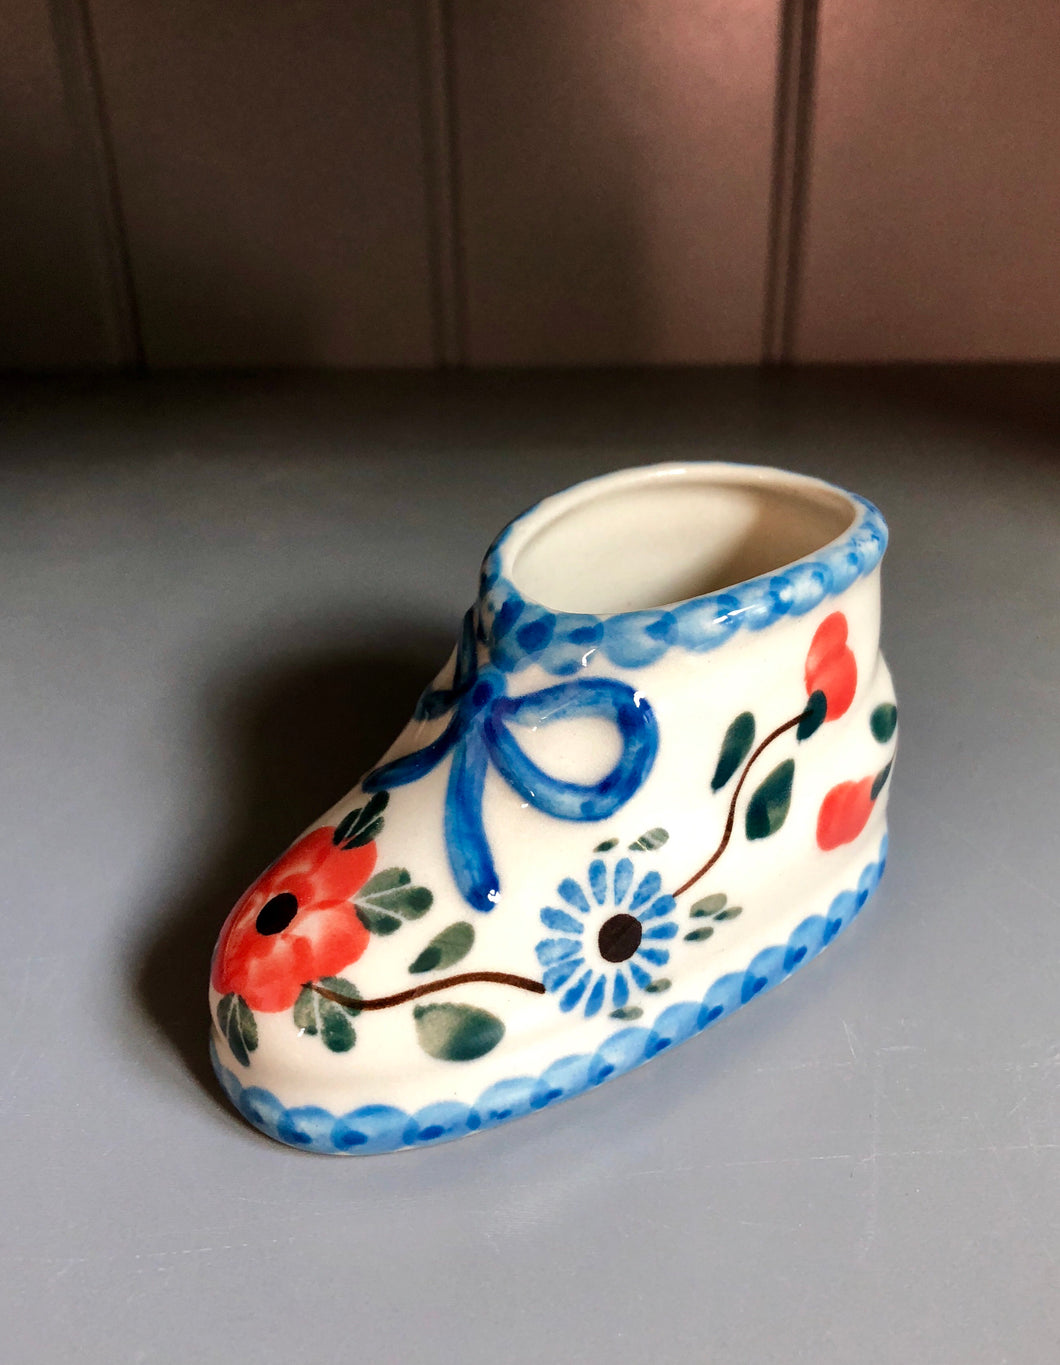 Baby Shoe Figurine